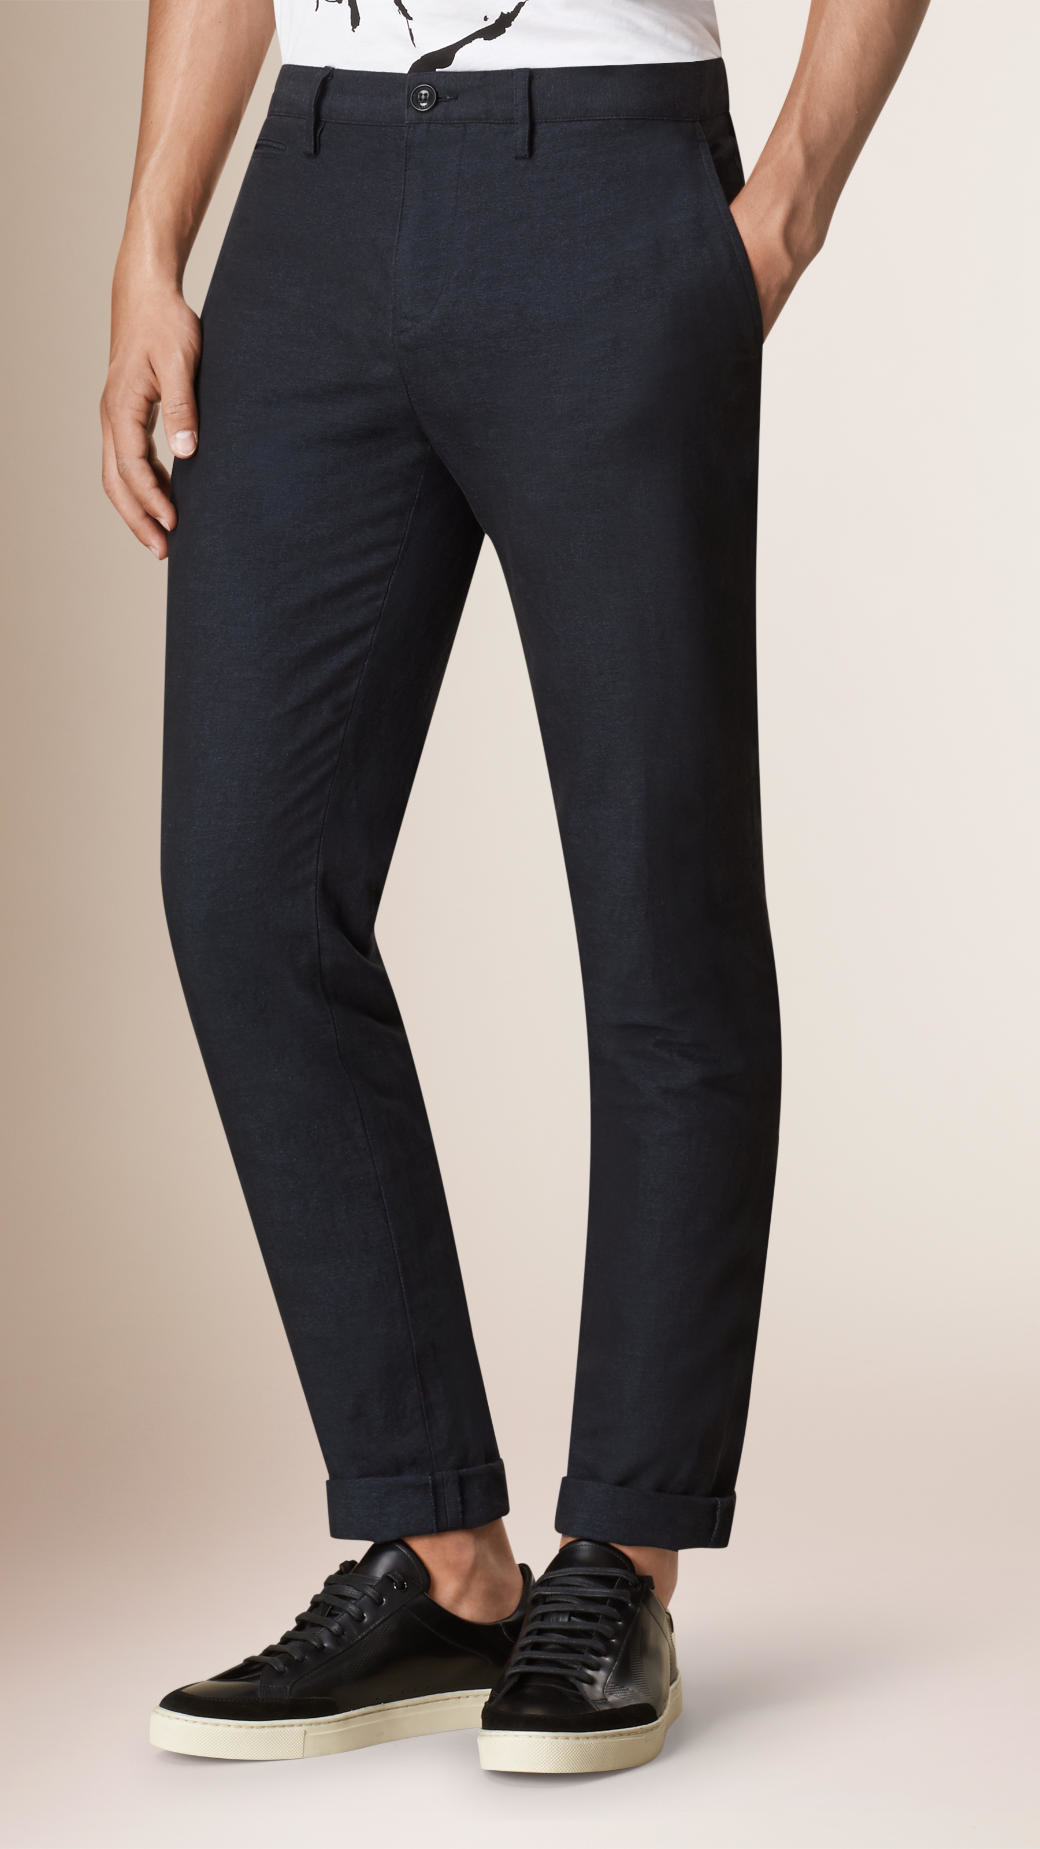 Manchester Great Sale For Sale Mid-rise slim-leg jersey trousers Burberry Excellent Cheap Price Buy Cheap Deals How Much For Sale Clearance Get Authentic MtTsw8Bp